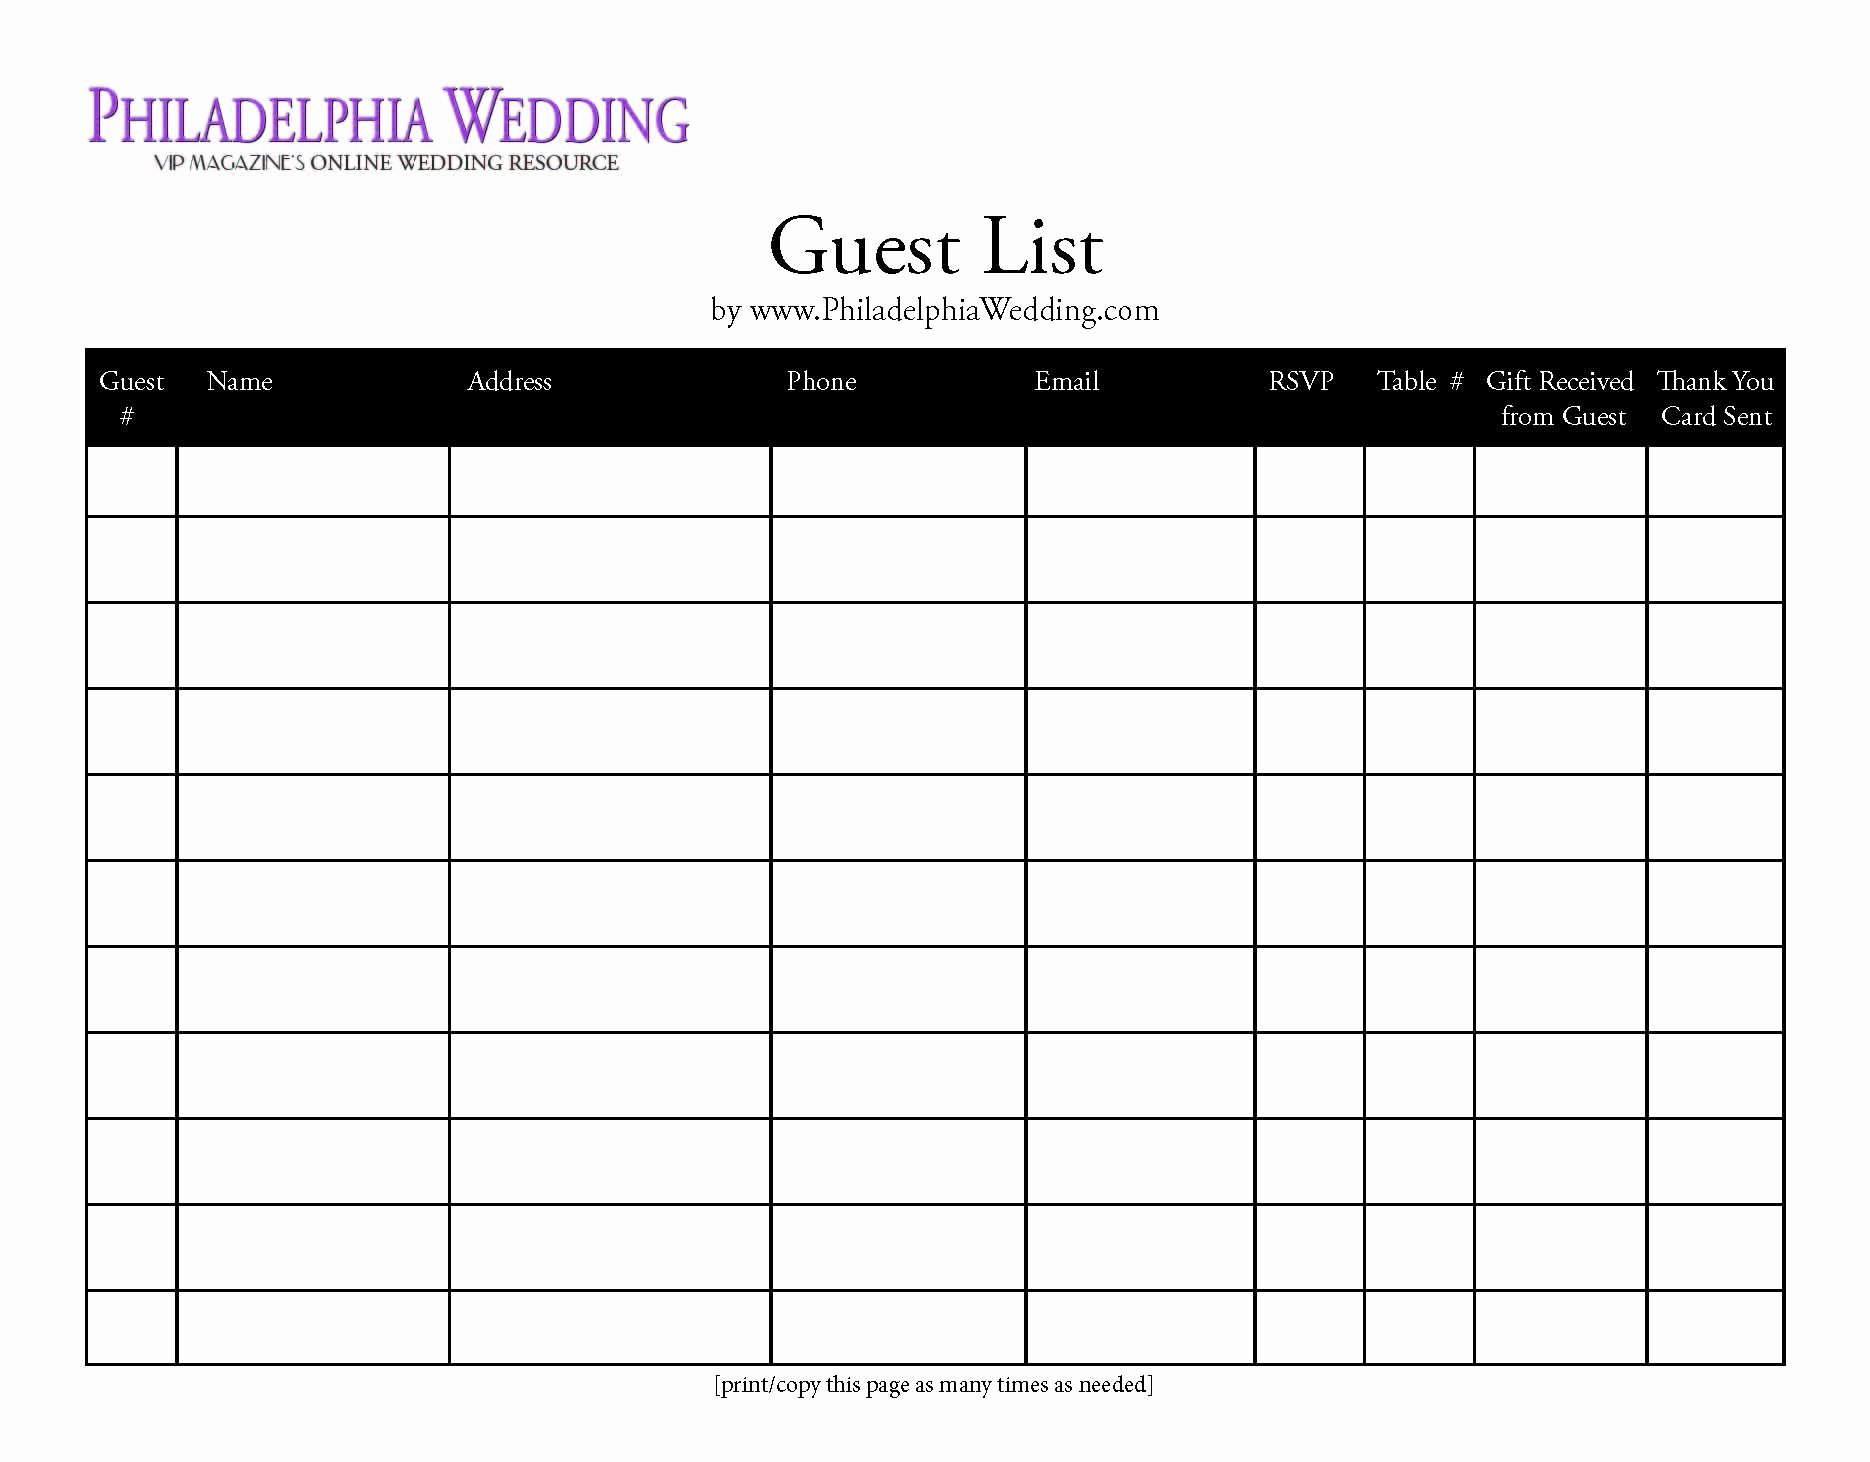 Bridal Party List Template Portablegasgrillweber